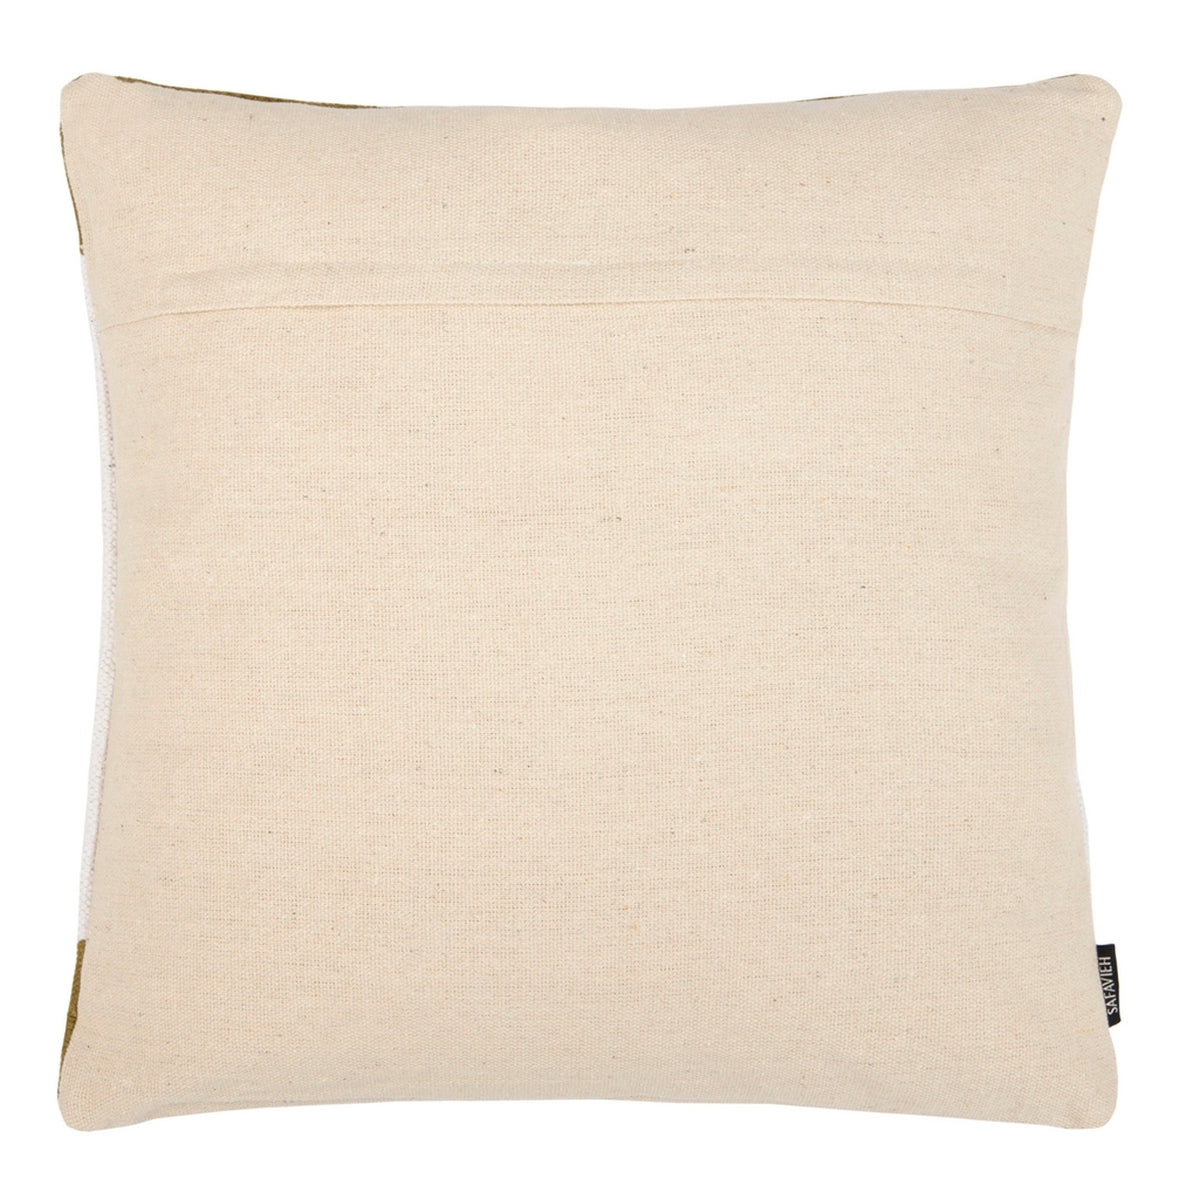 Haleigh Pillow.